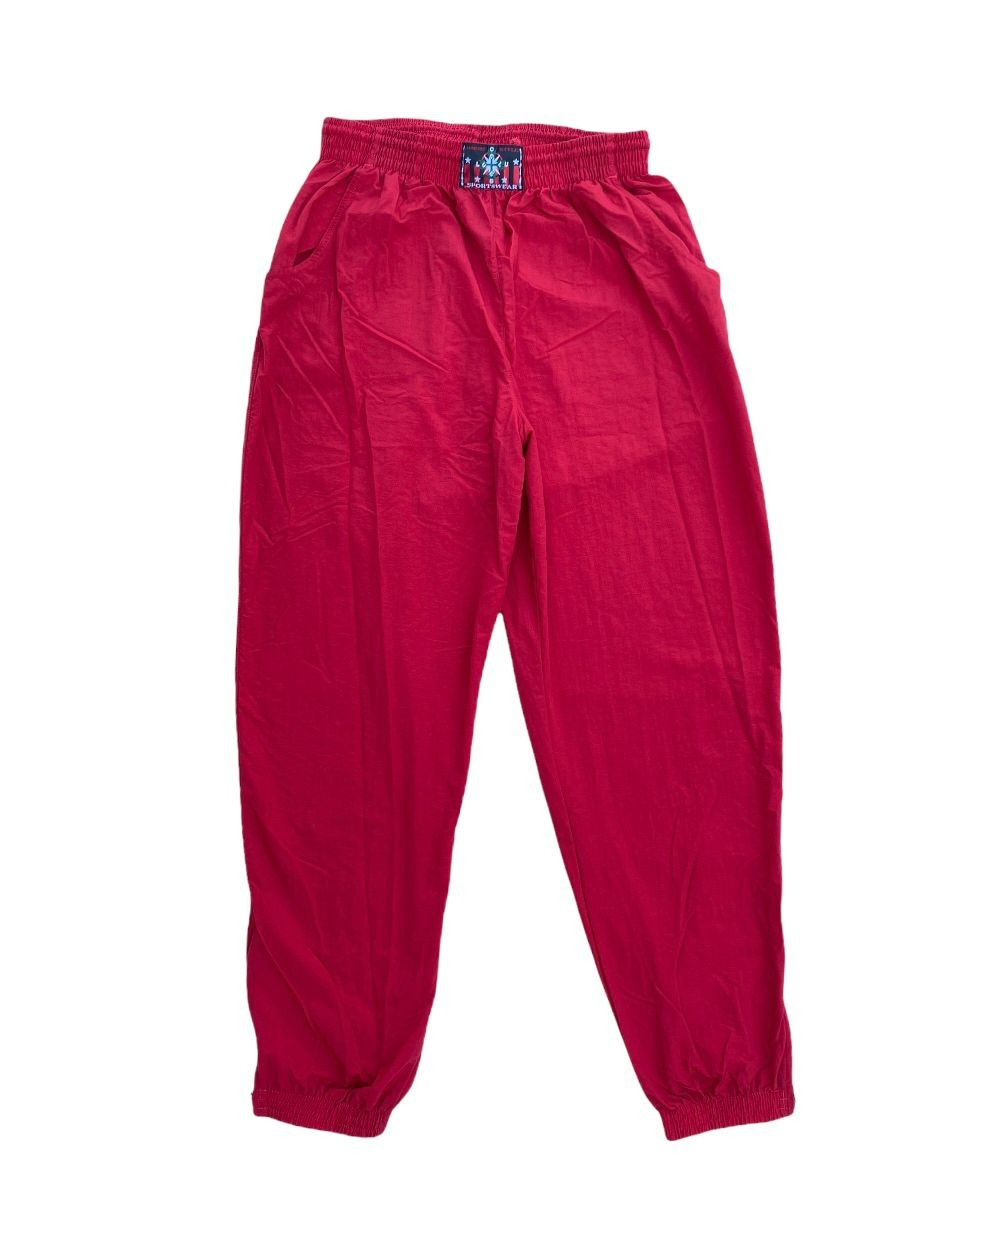 Orvis Sport Red Jogger (L)